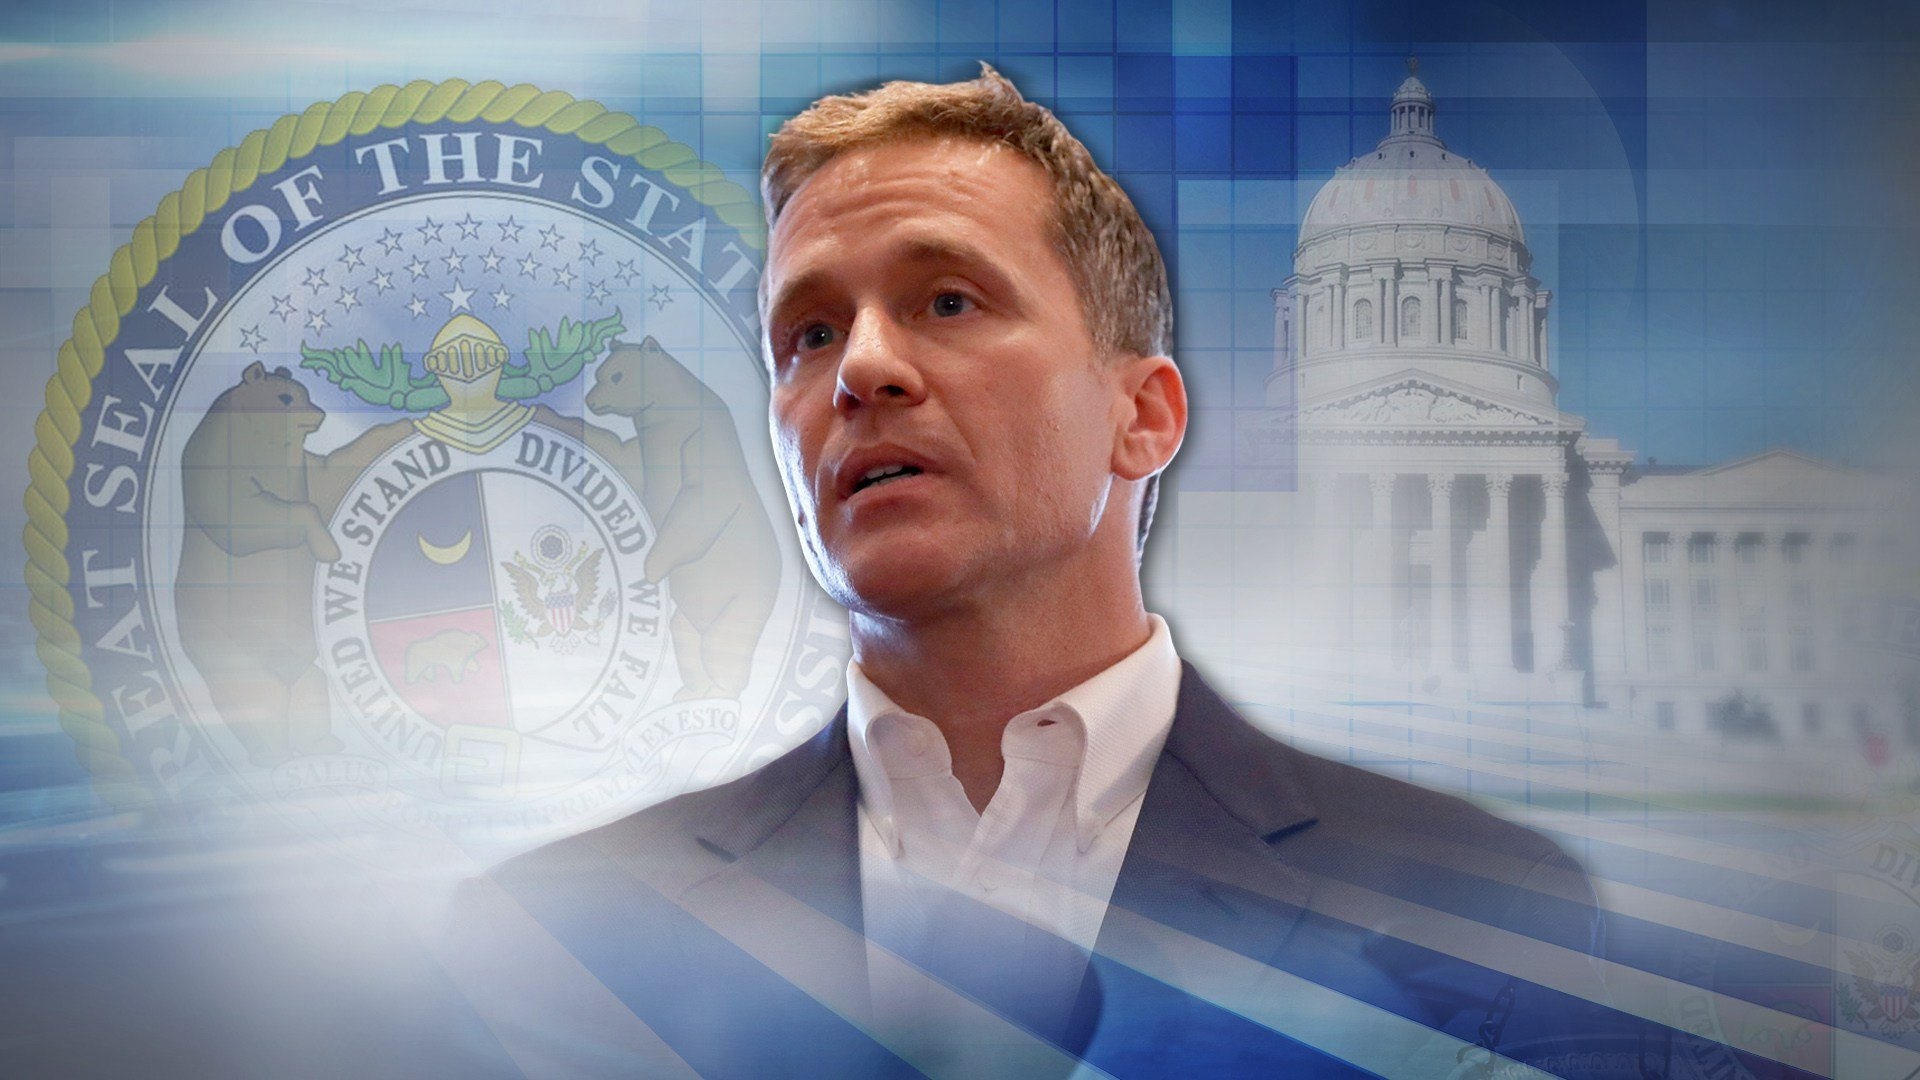 Attorneys for Missouri Gov. Eric Greitens say they'll ask police to look into alleged misconduct by the St. Louis prosecutor's office in the handling of a felony charge against the governor. (KCTV5)